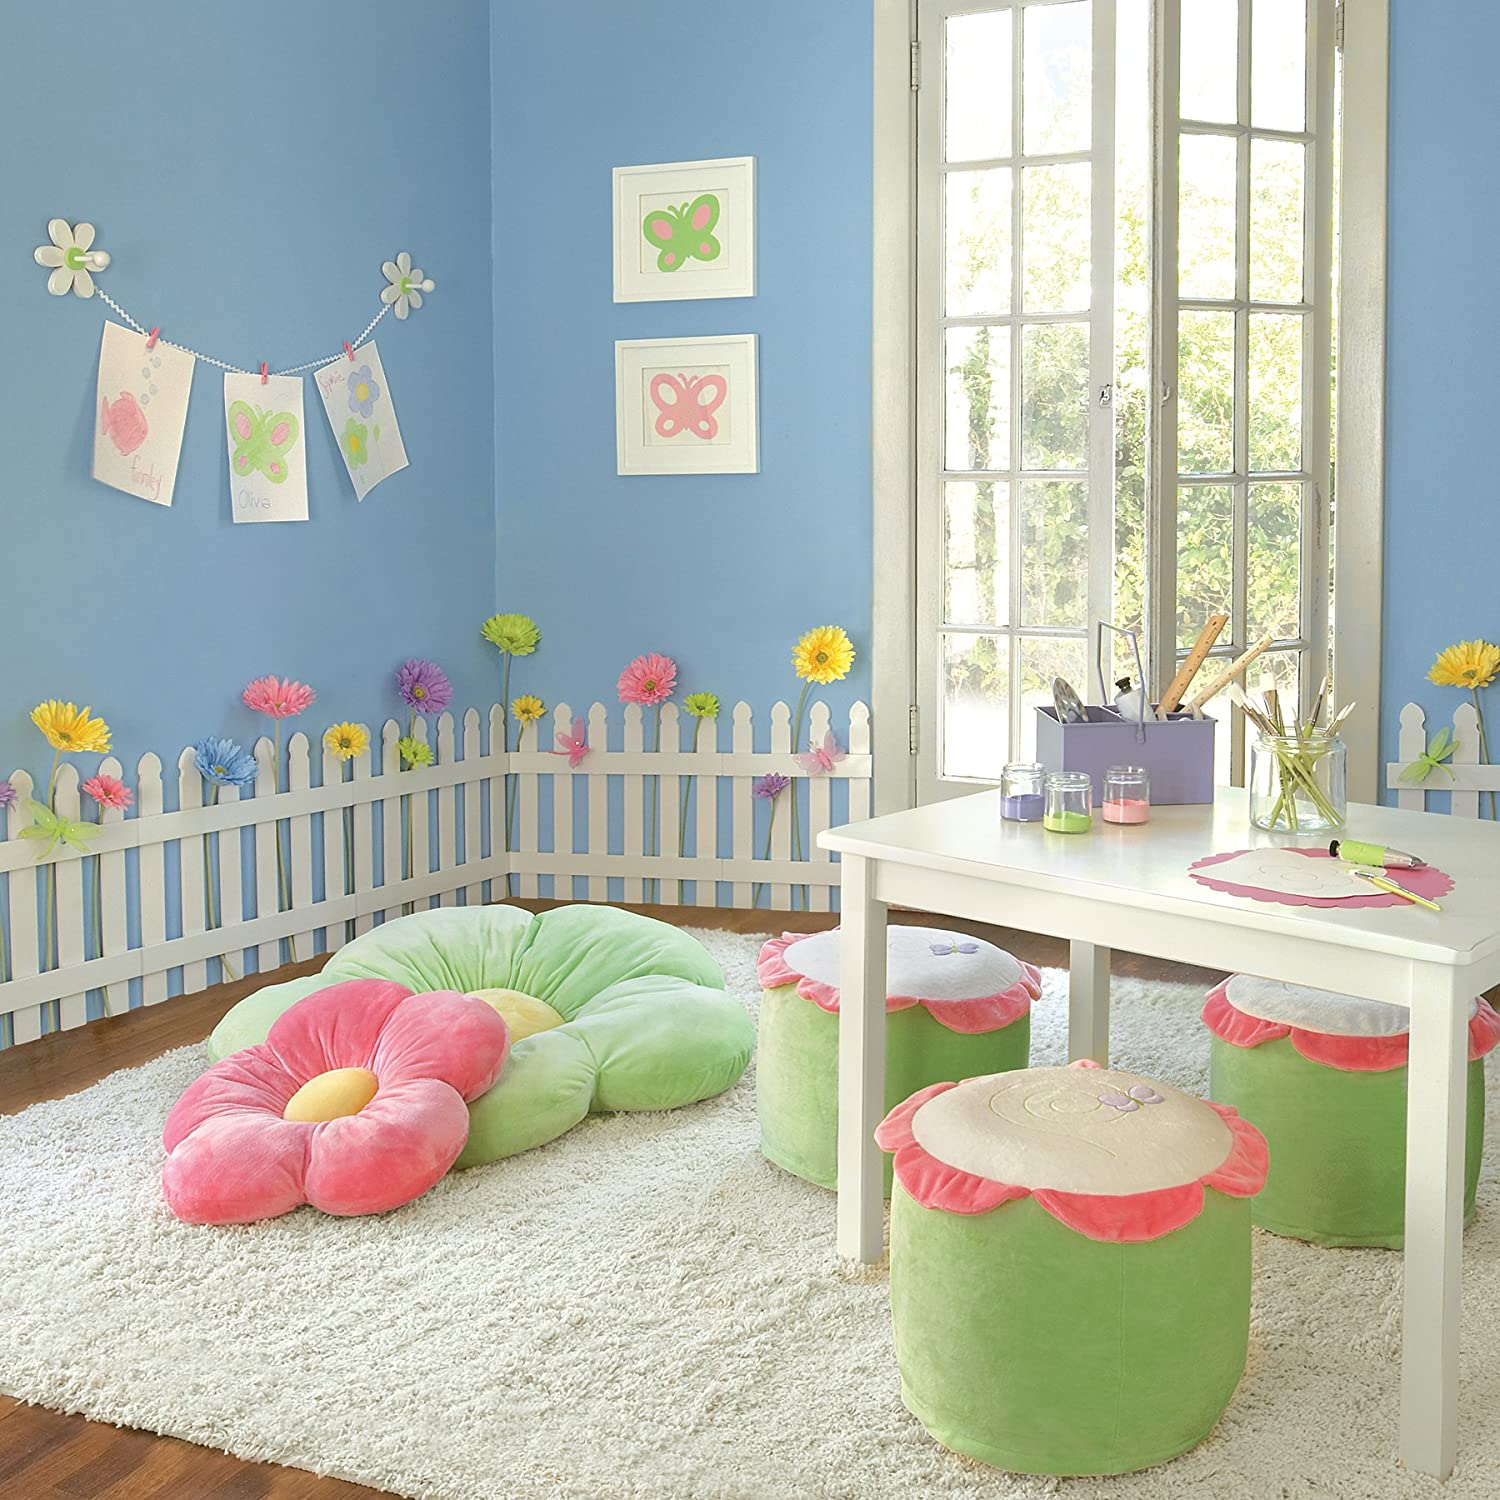 Kids Room Decor: White Wooden Picket Fences For Kids Room Wall Border